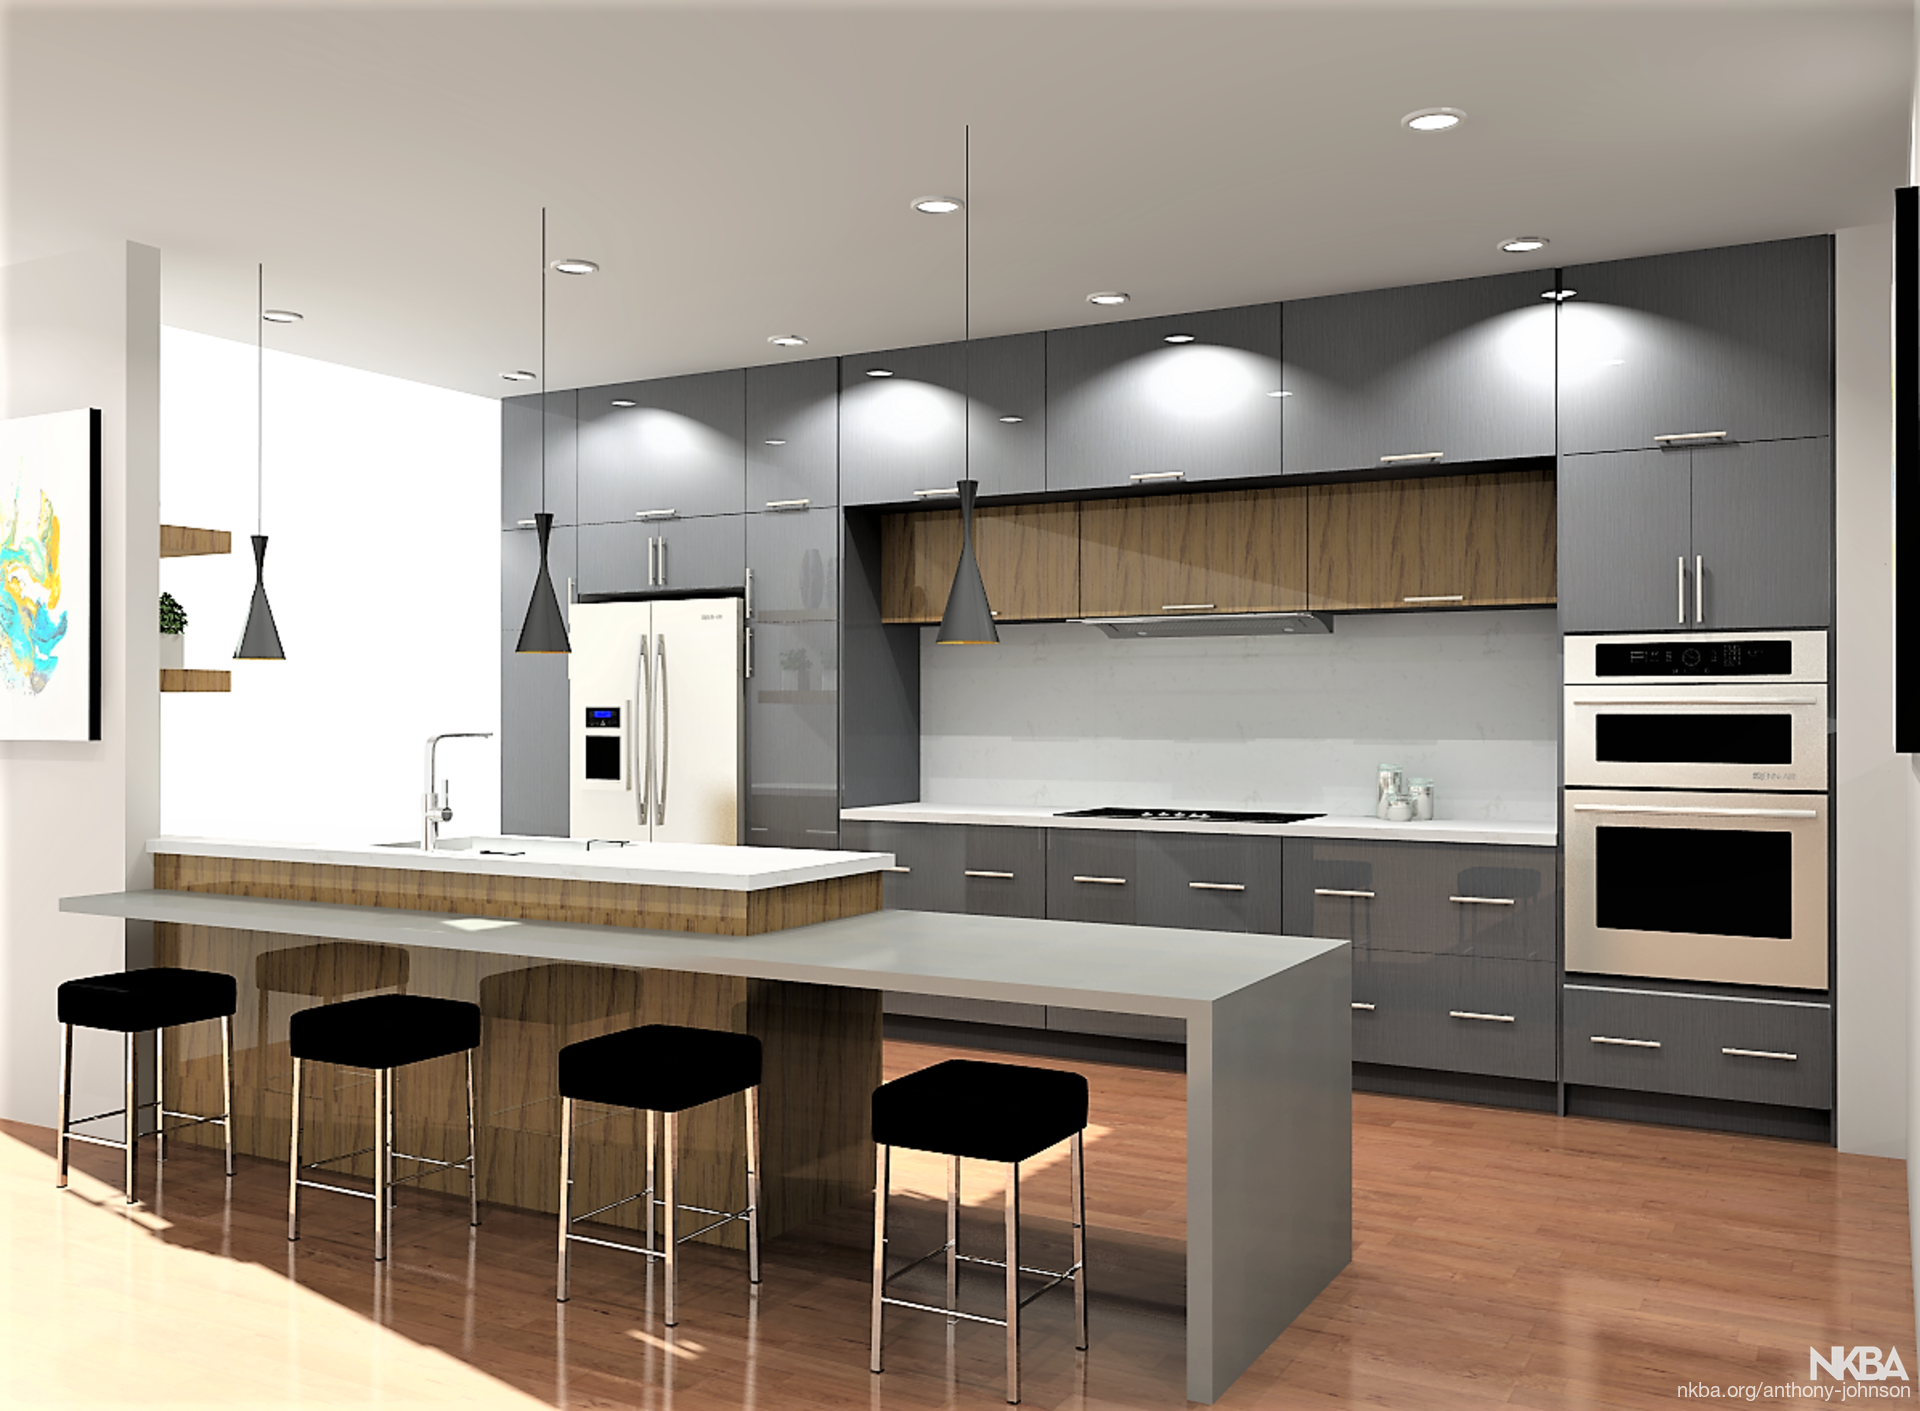 Modern Kitchen Design (Hollywood) - NKBA on Modern Kitchen Design  id=49333